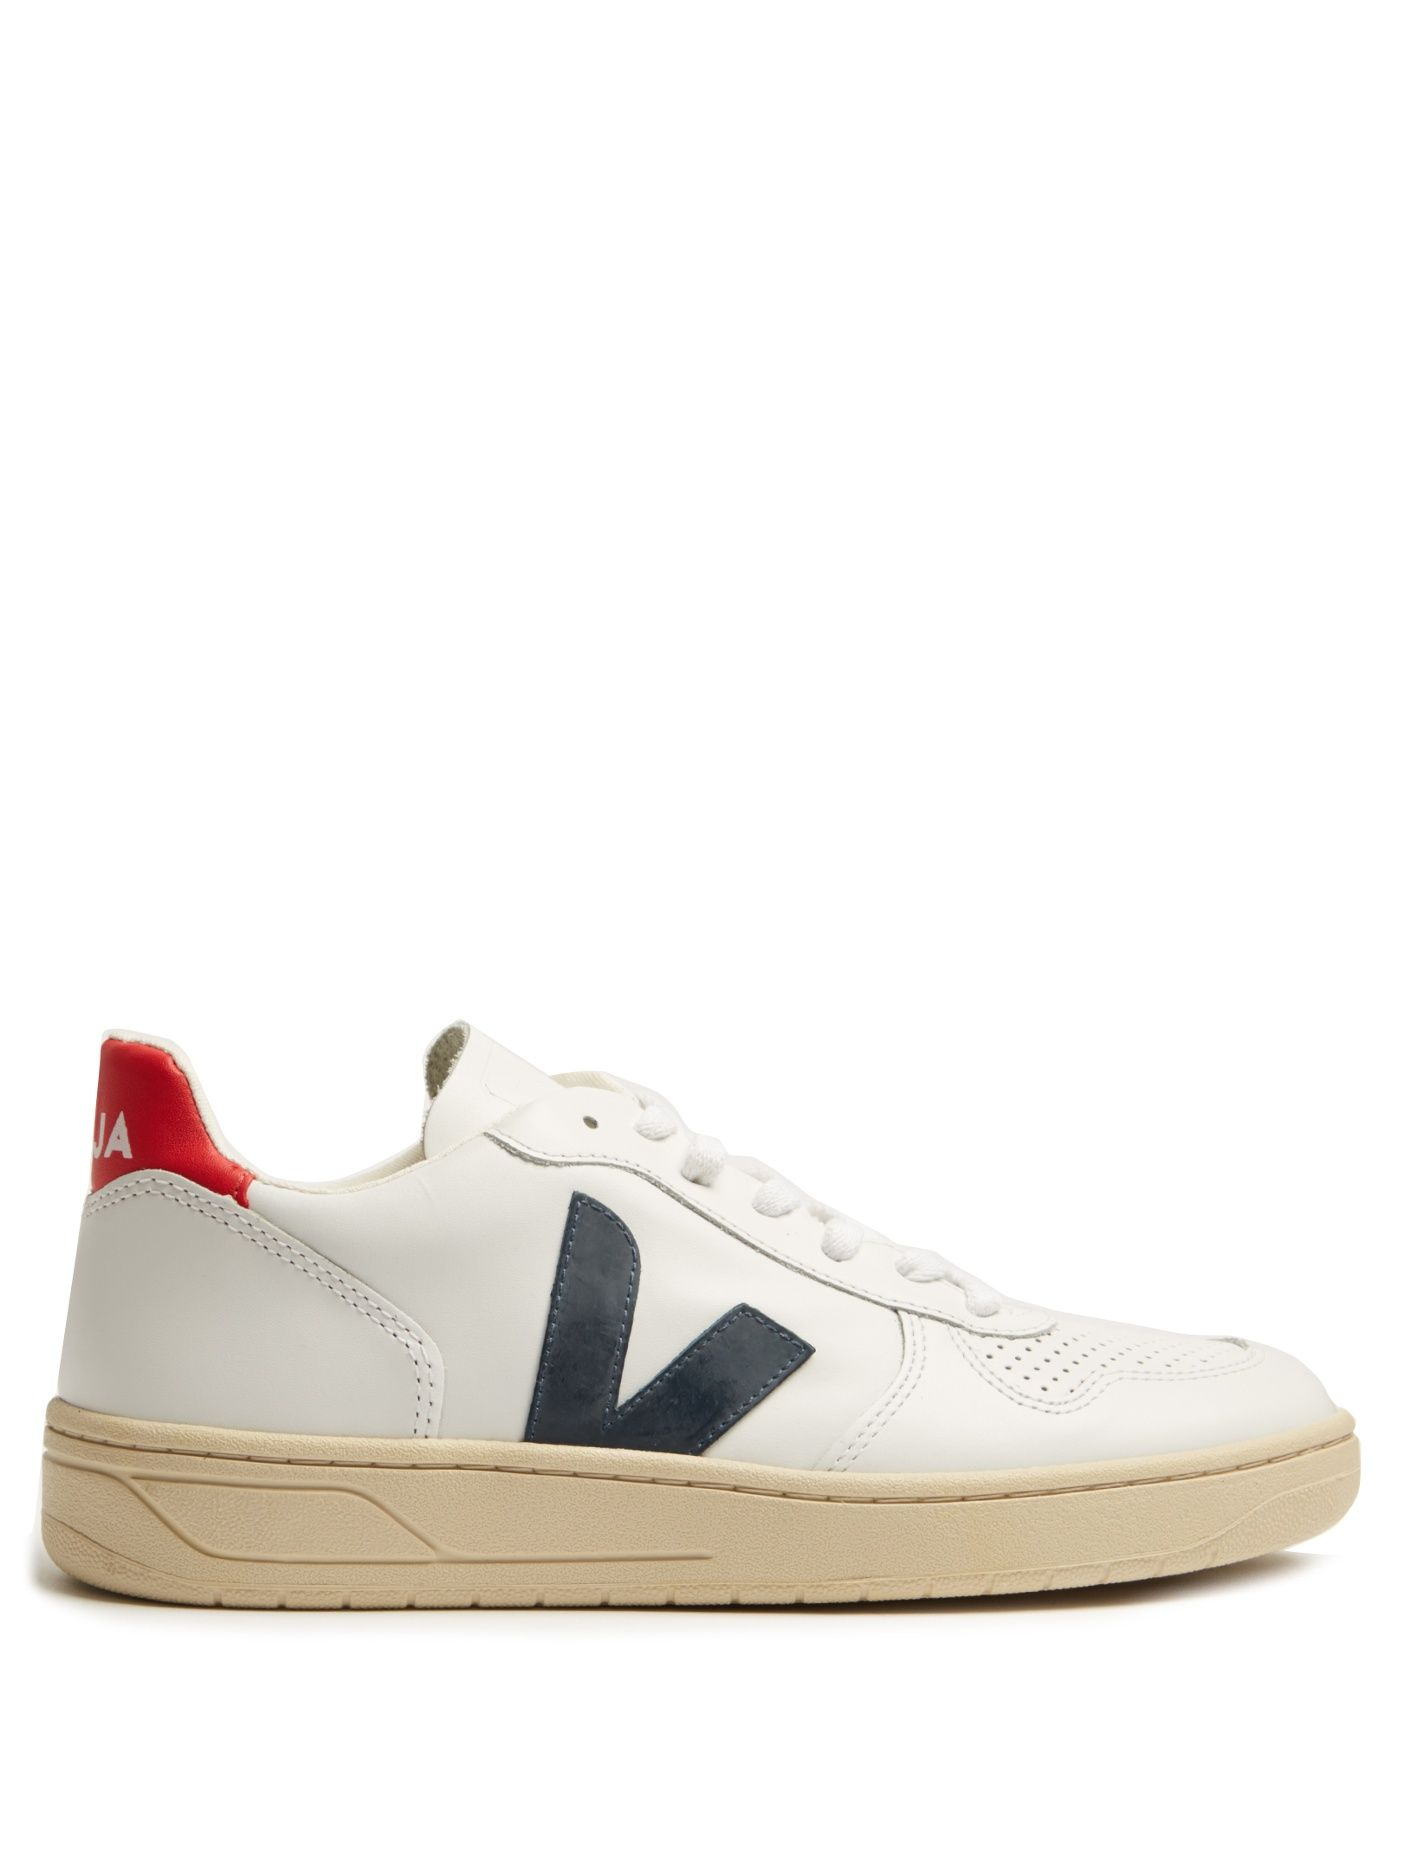 3173d126b9864 Click here to buy Veja V-10 low-top leather trainers at MATCHESFASHION.COM